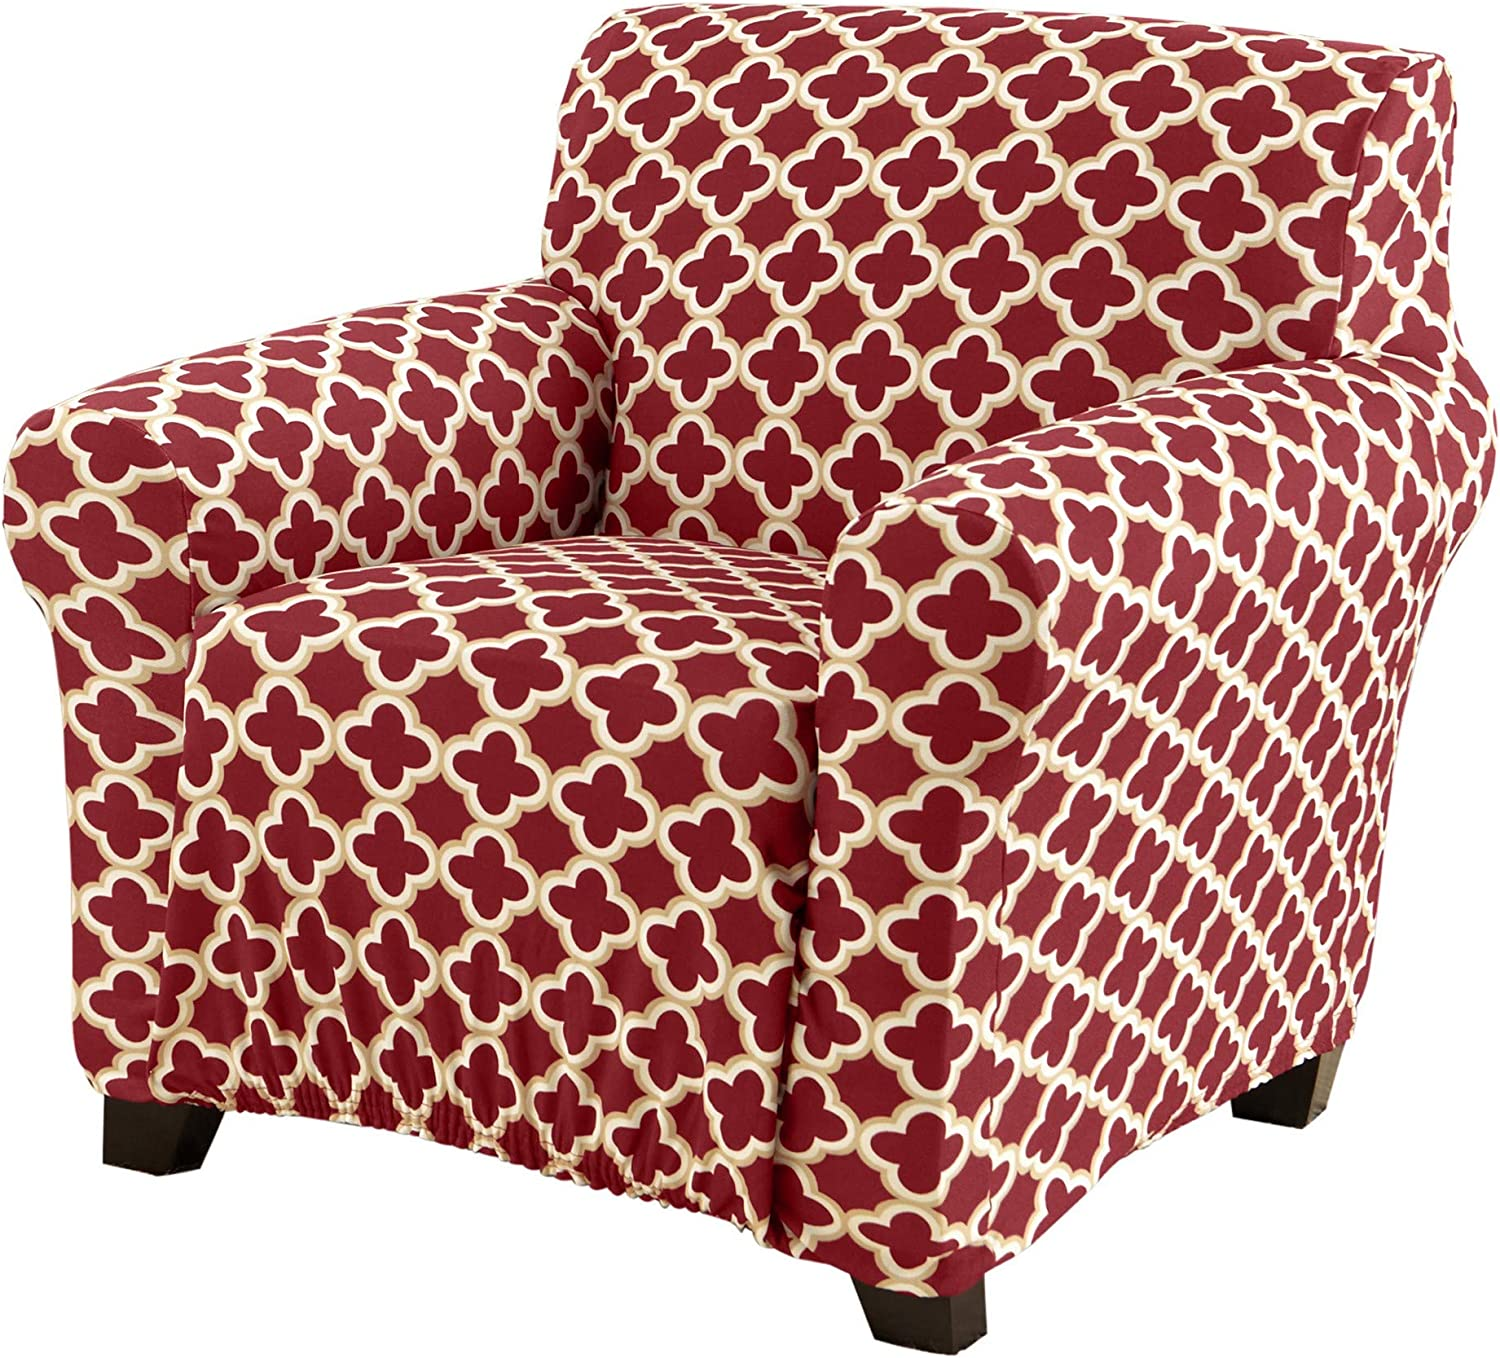 Printed Twill Arm Chair Slipcover. One Piece Stretch Chair Cover. Strapless Arm Chair Cover for Living Room. Fallon Collection Slipcover. (Chair, Burgundy)